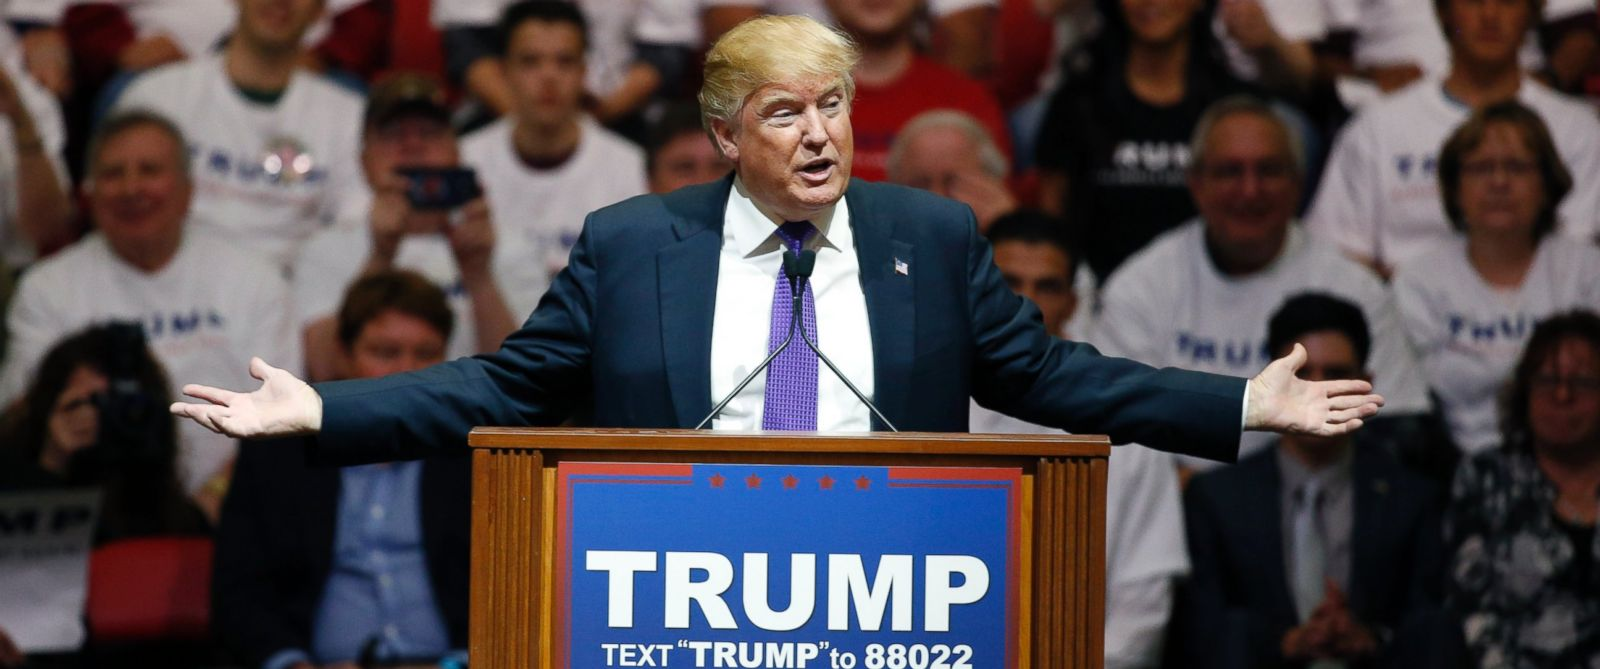 PHOTO:Republican presidential candidate Donald Trump speaks at a campaign rally, Feb. 22, 2016, in Las Vegas.